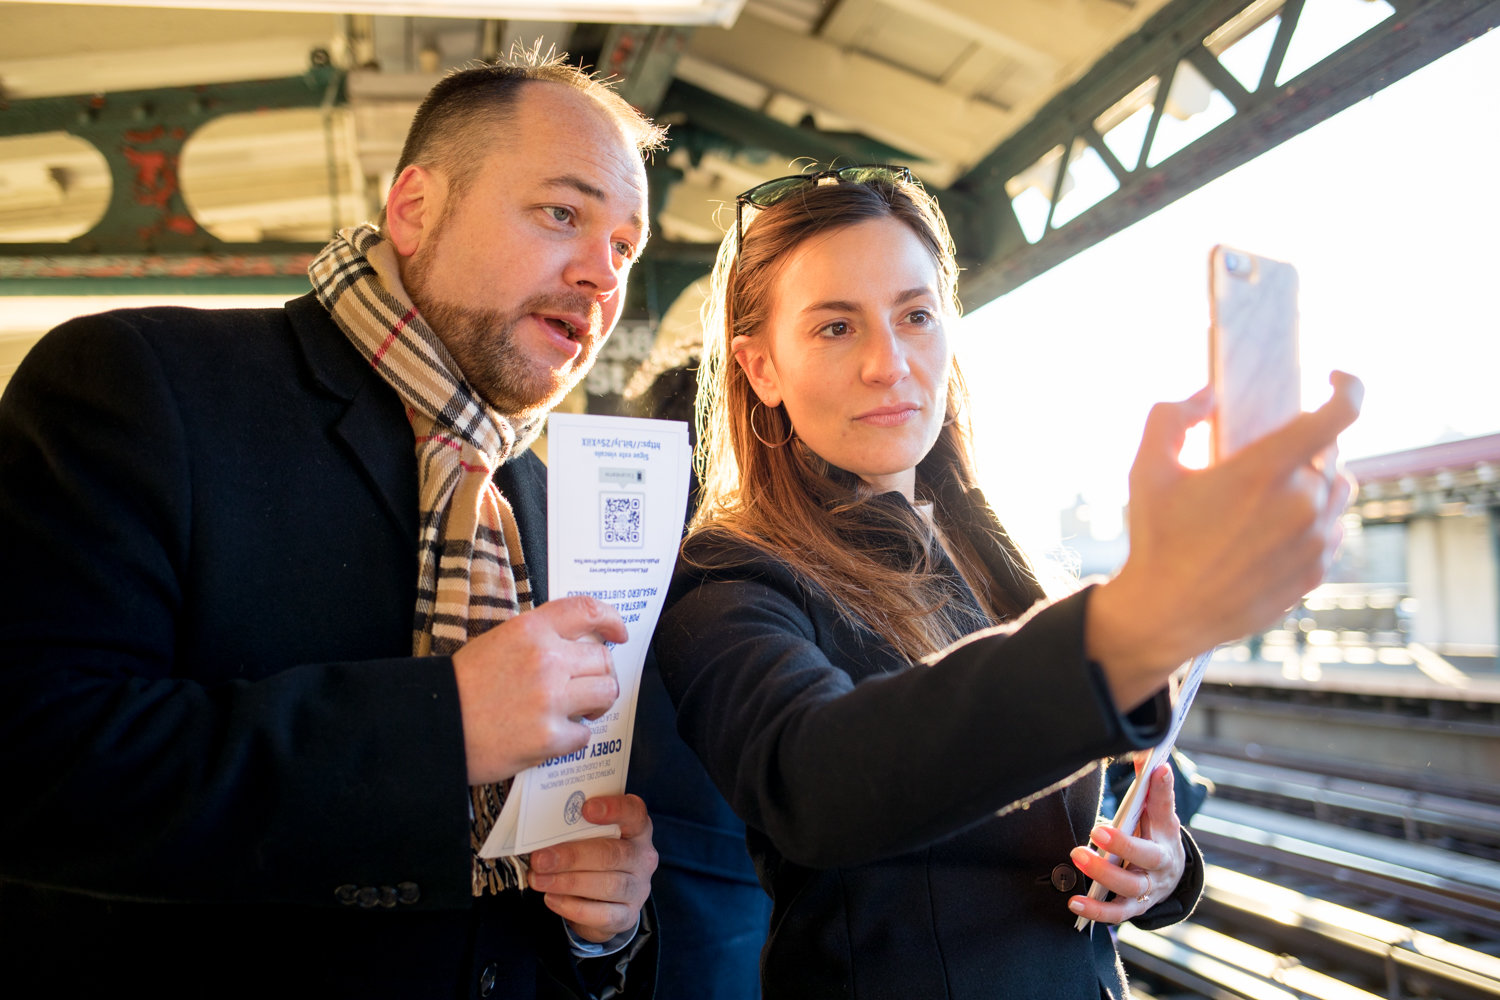 City council Speaker Corey Johnson and state Sen. Alessandra Biaggi record a video on Instagram during a transit tour in January. Johnson wants to break the city's 'car culture' to make streets and roads less congested, help the environment, and improve public transit.